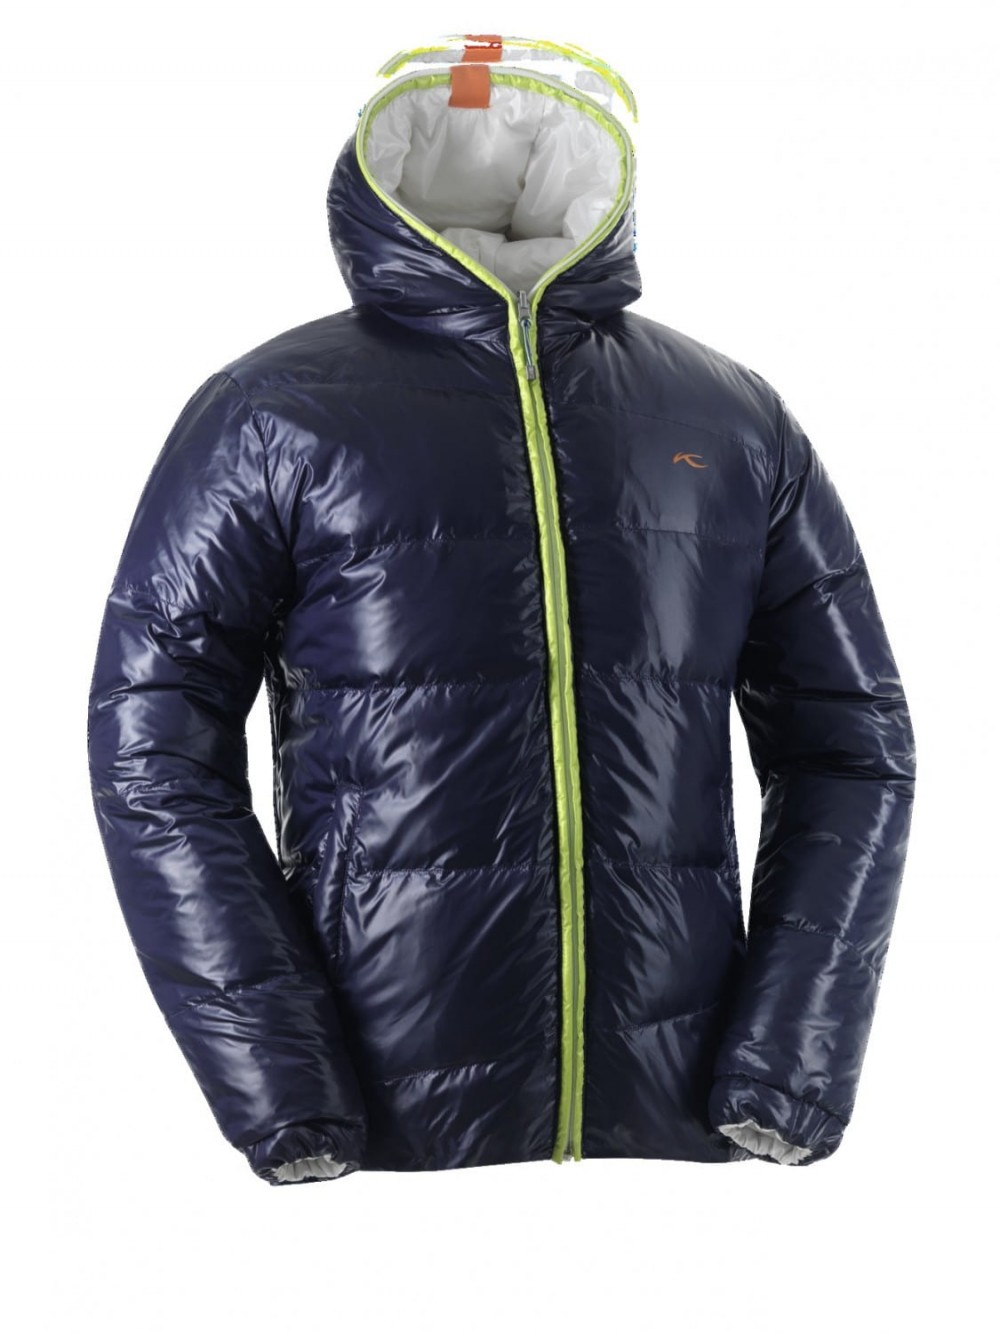 Куртка KJUS spin down jacket (размер XL) - 18498